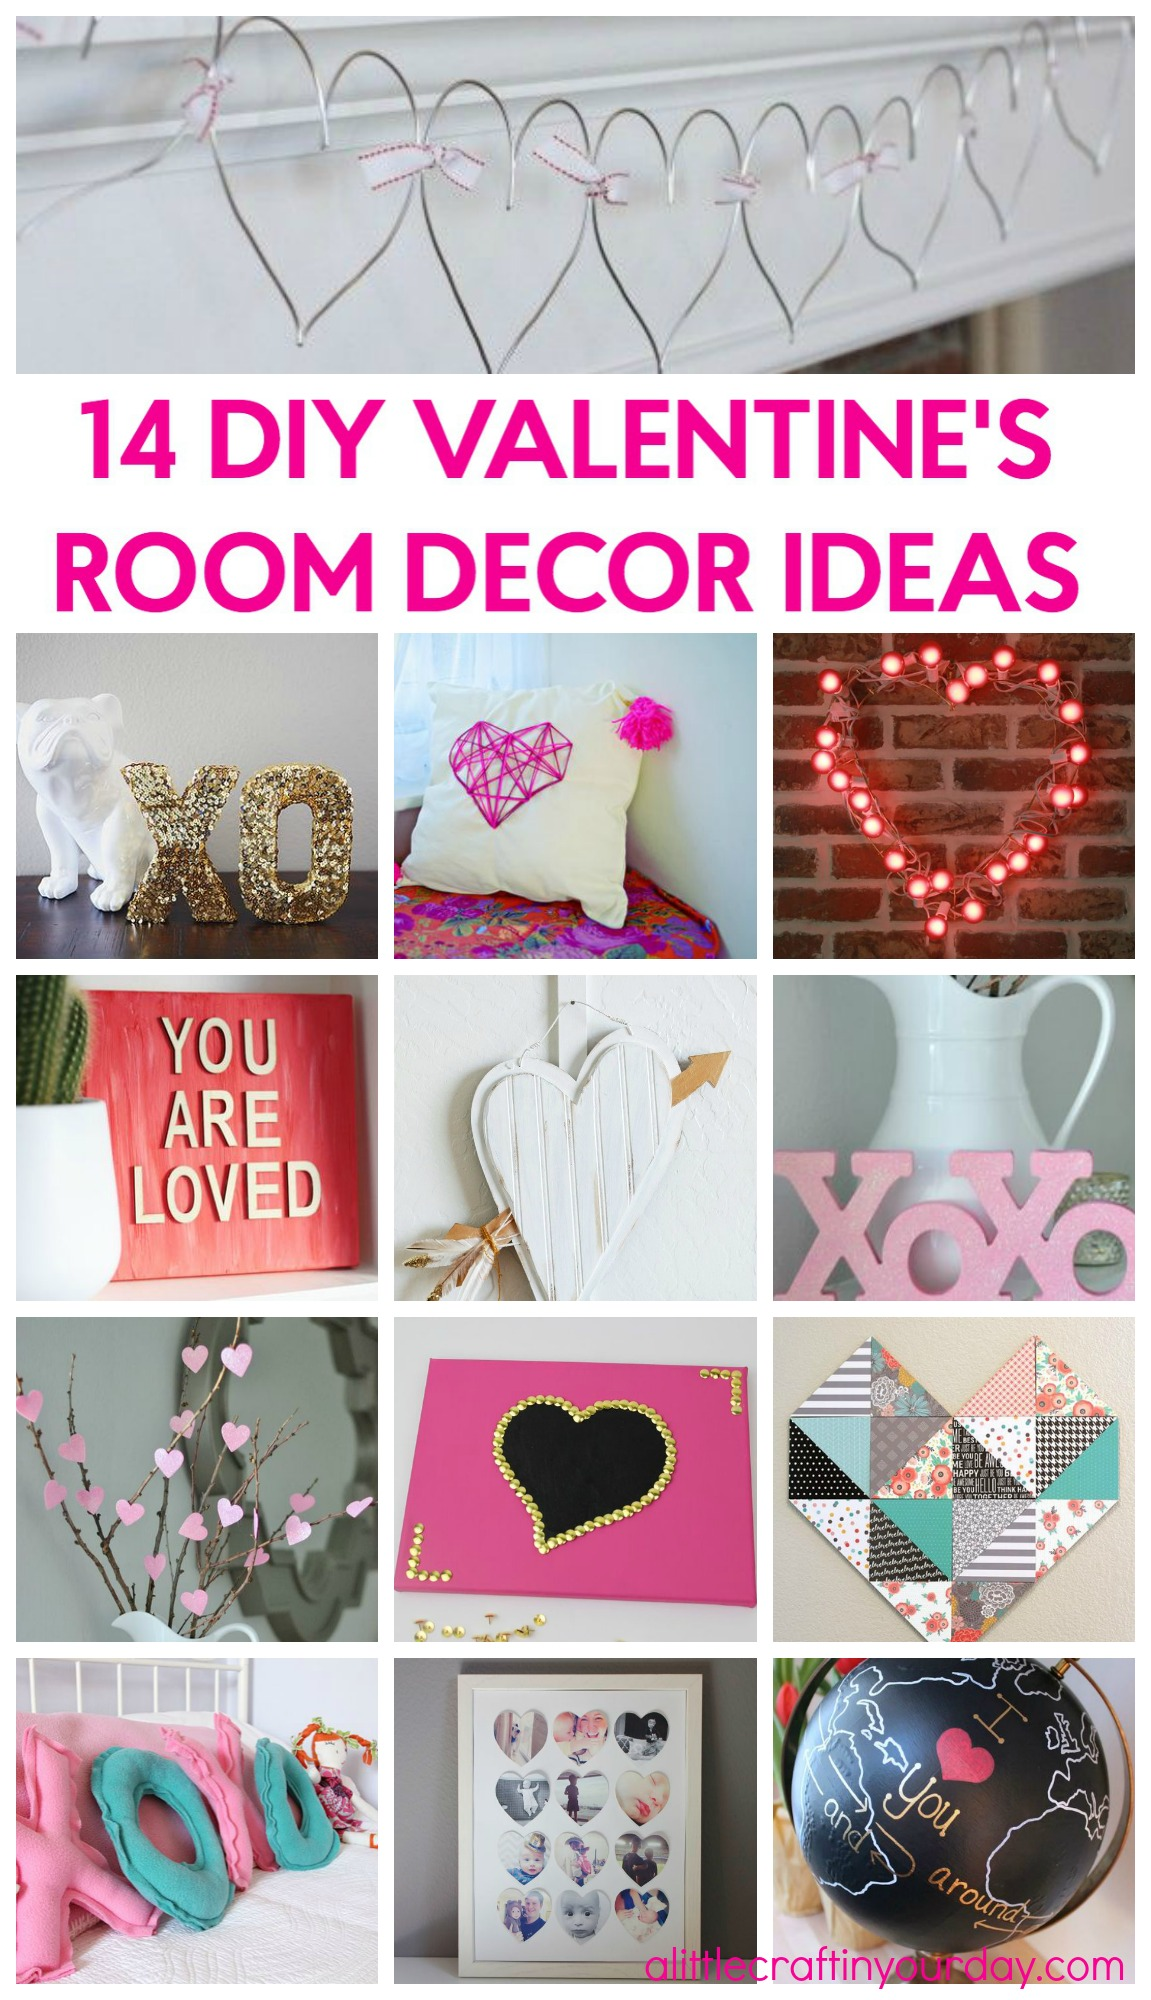 14 Year Old Room Ideas 14 Valentine 39s Room Decor Ideas A Little Craft In Your Day